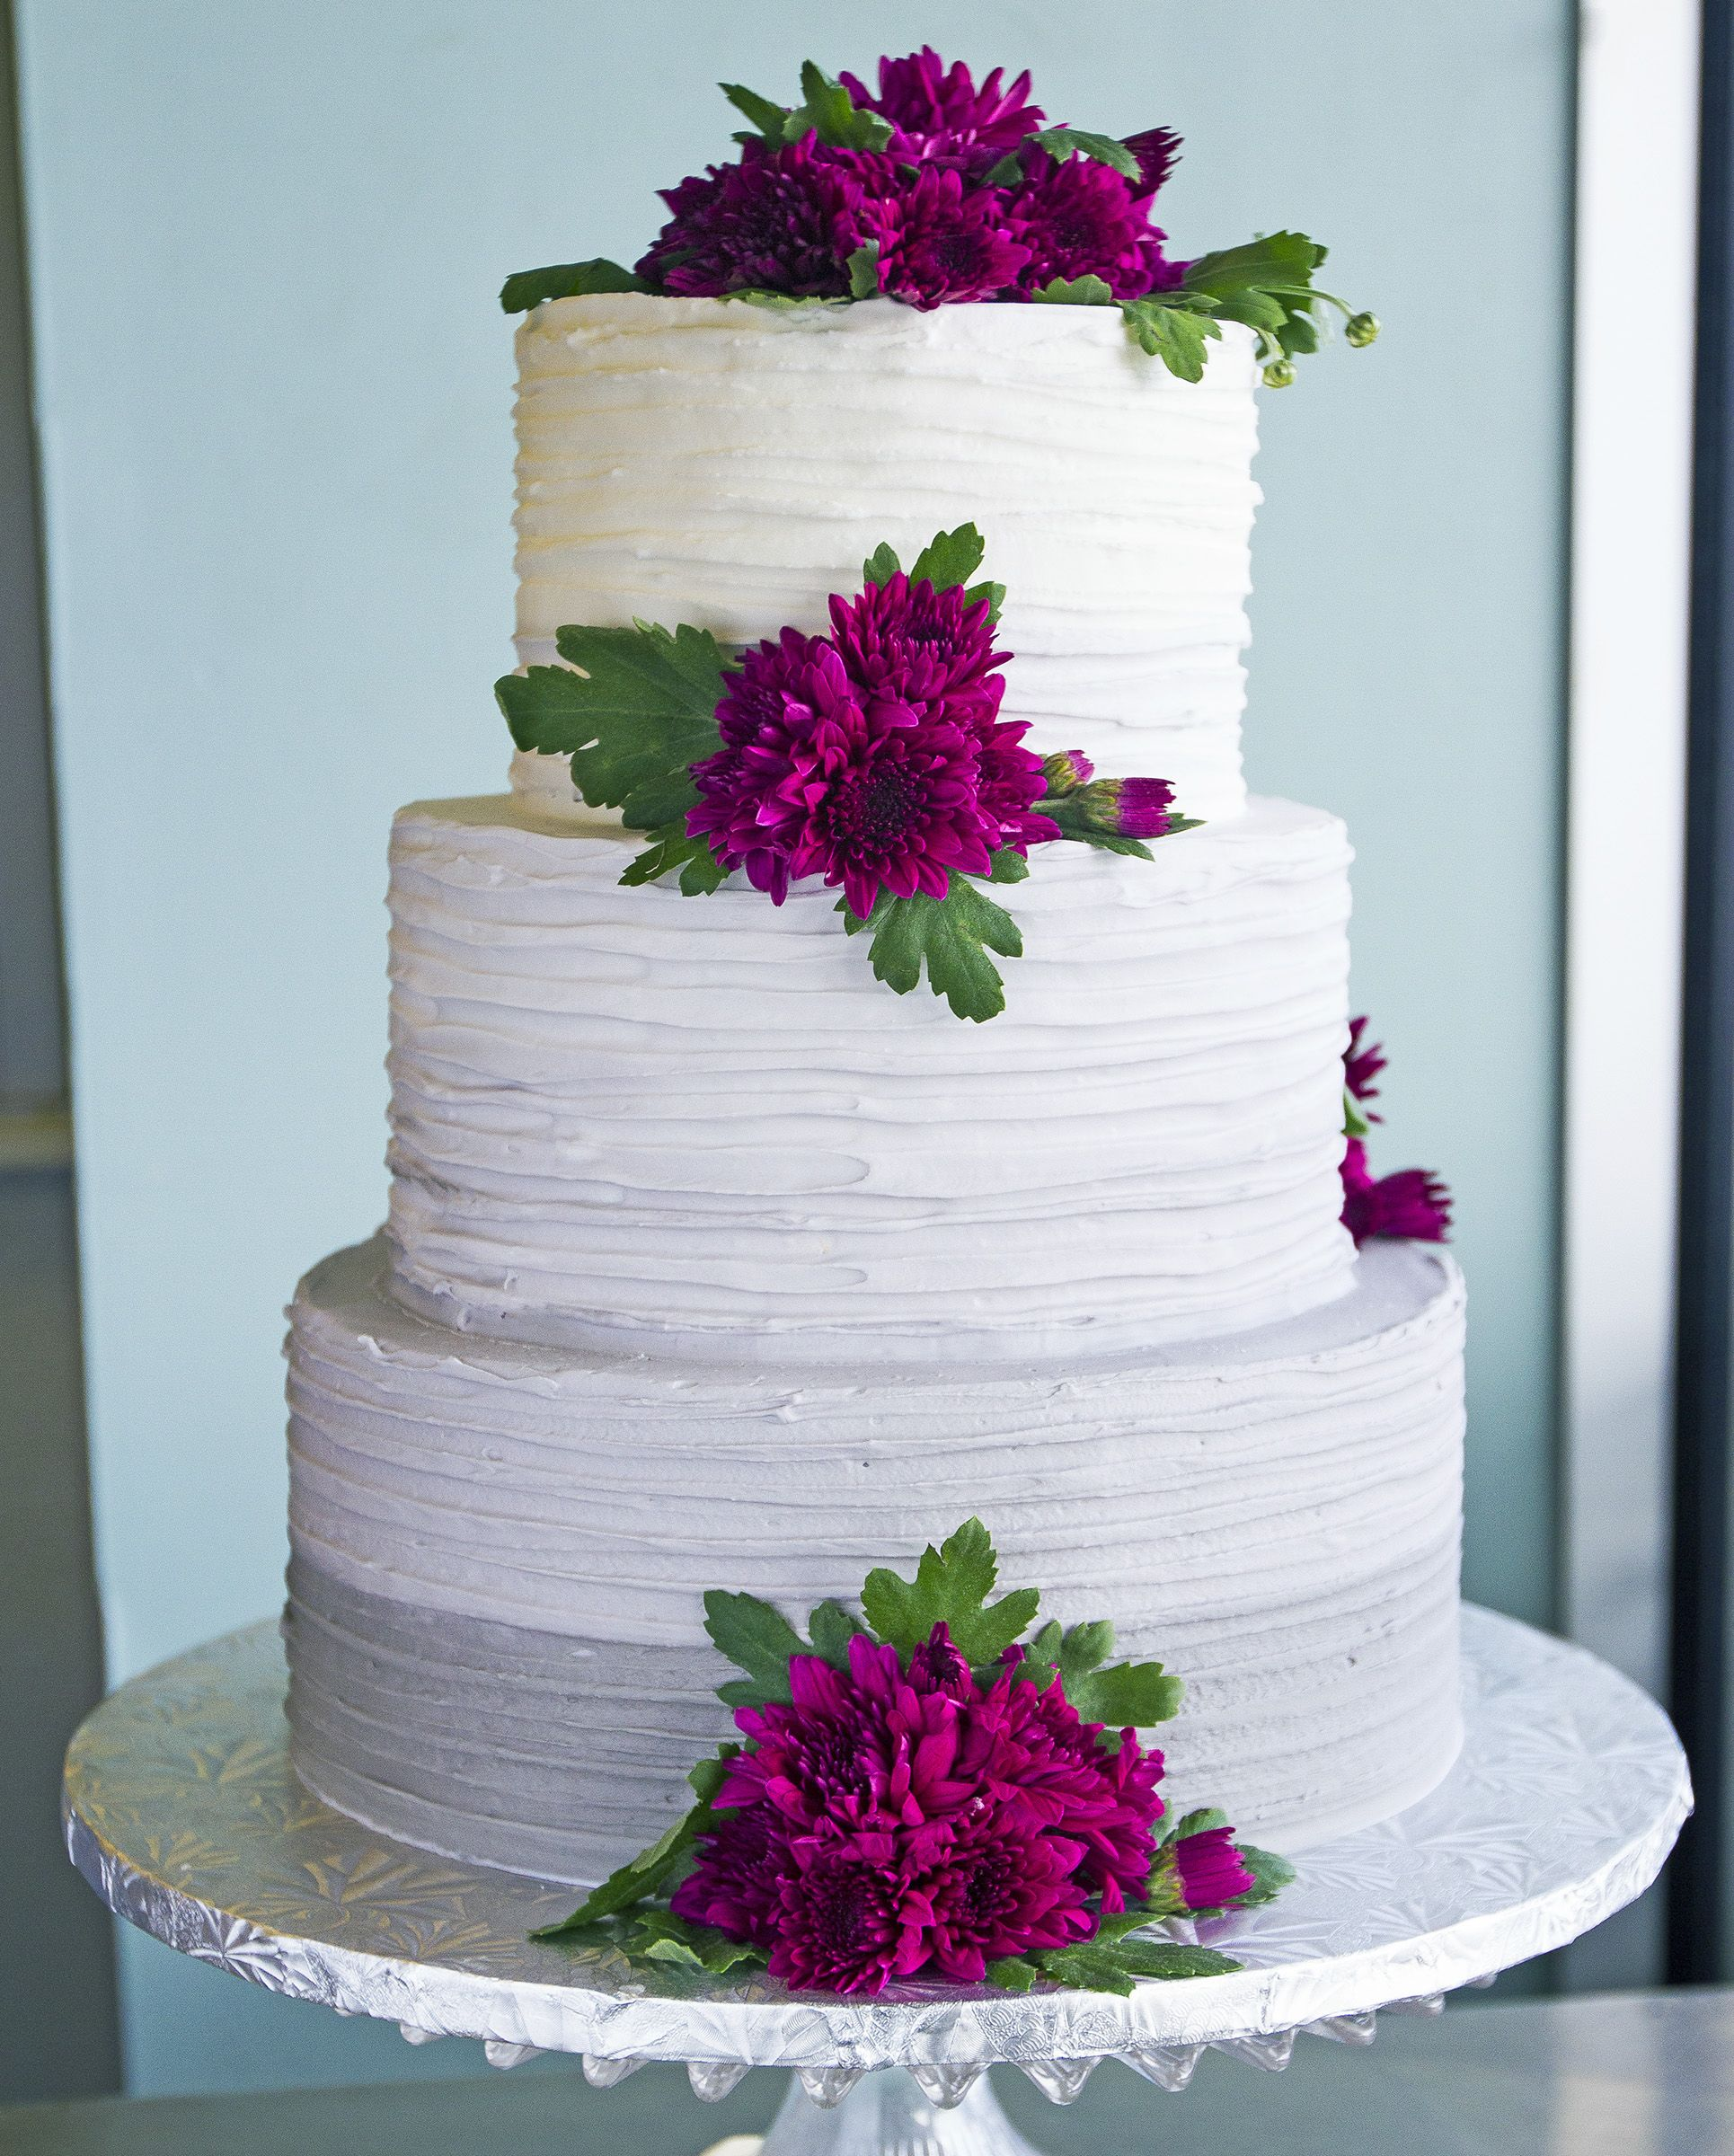 Simple White Wedding Cake With Purple Flowers Cake 177 Wedding